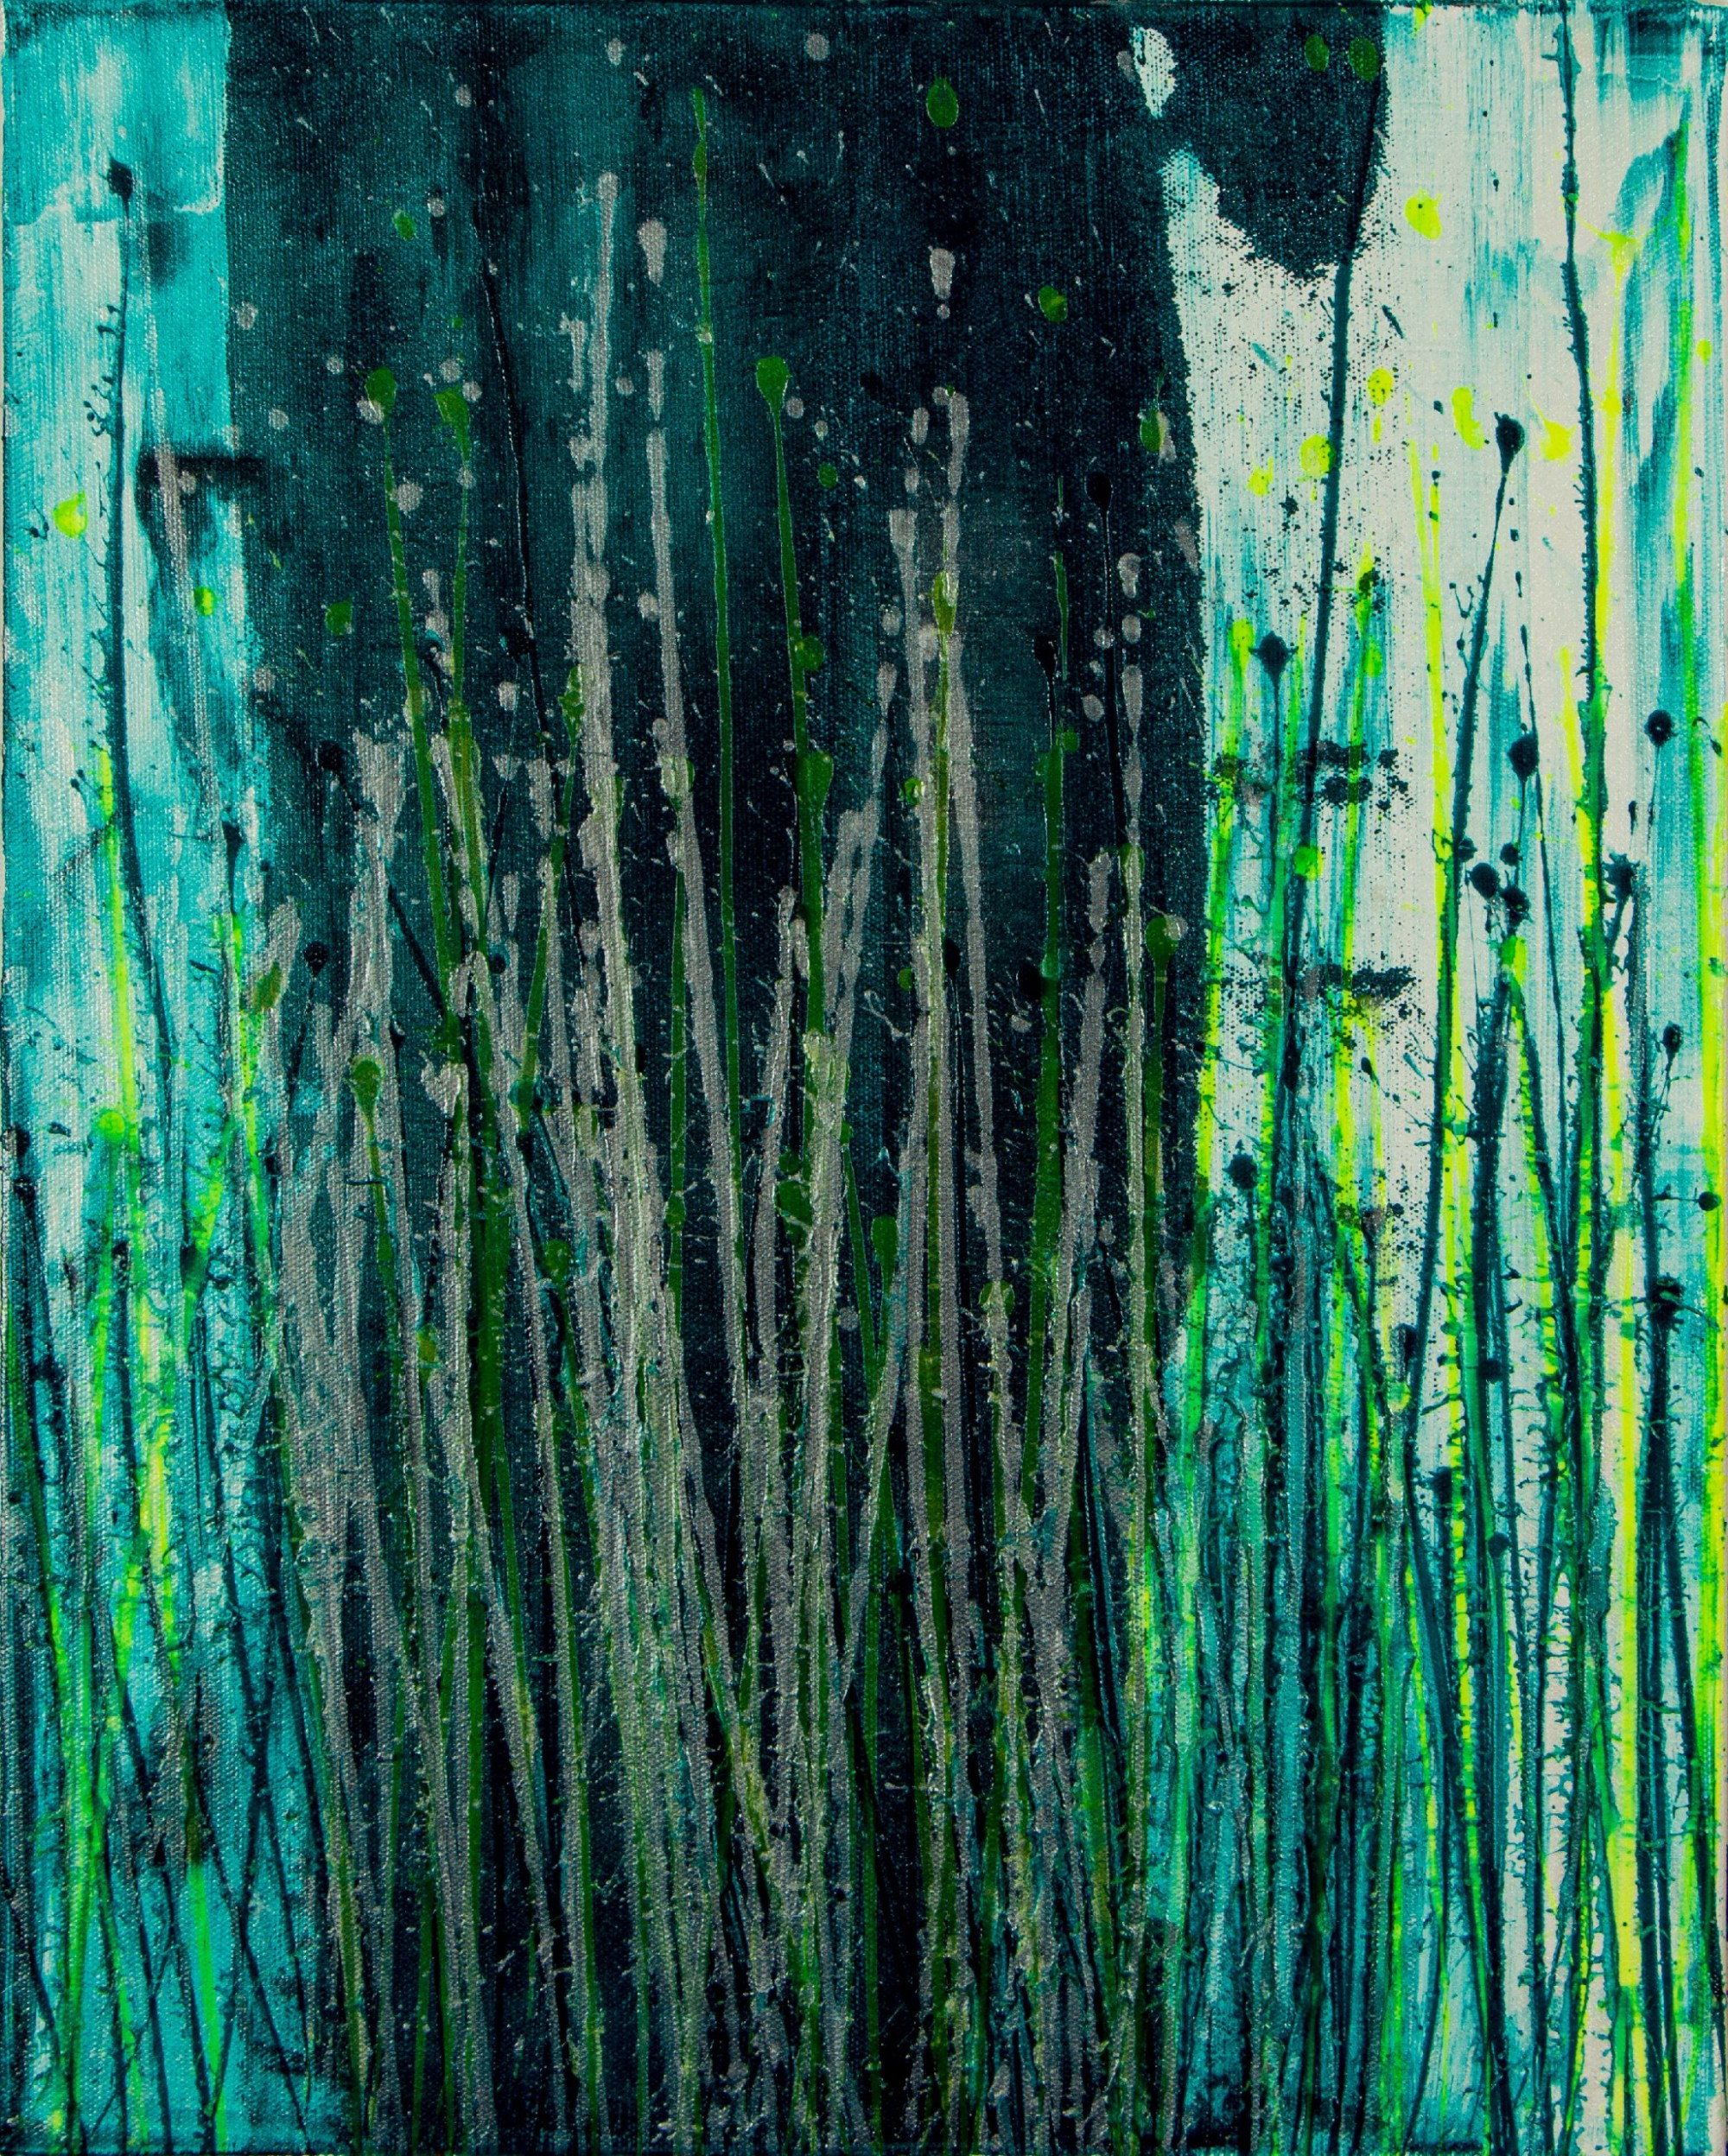 Canvas 1 - Vernal Garden (With Green and Silver) (2021) - Triptych